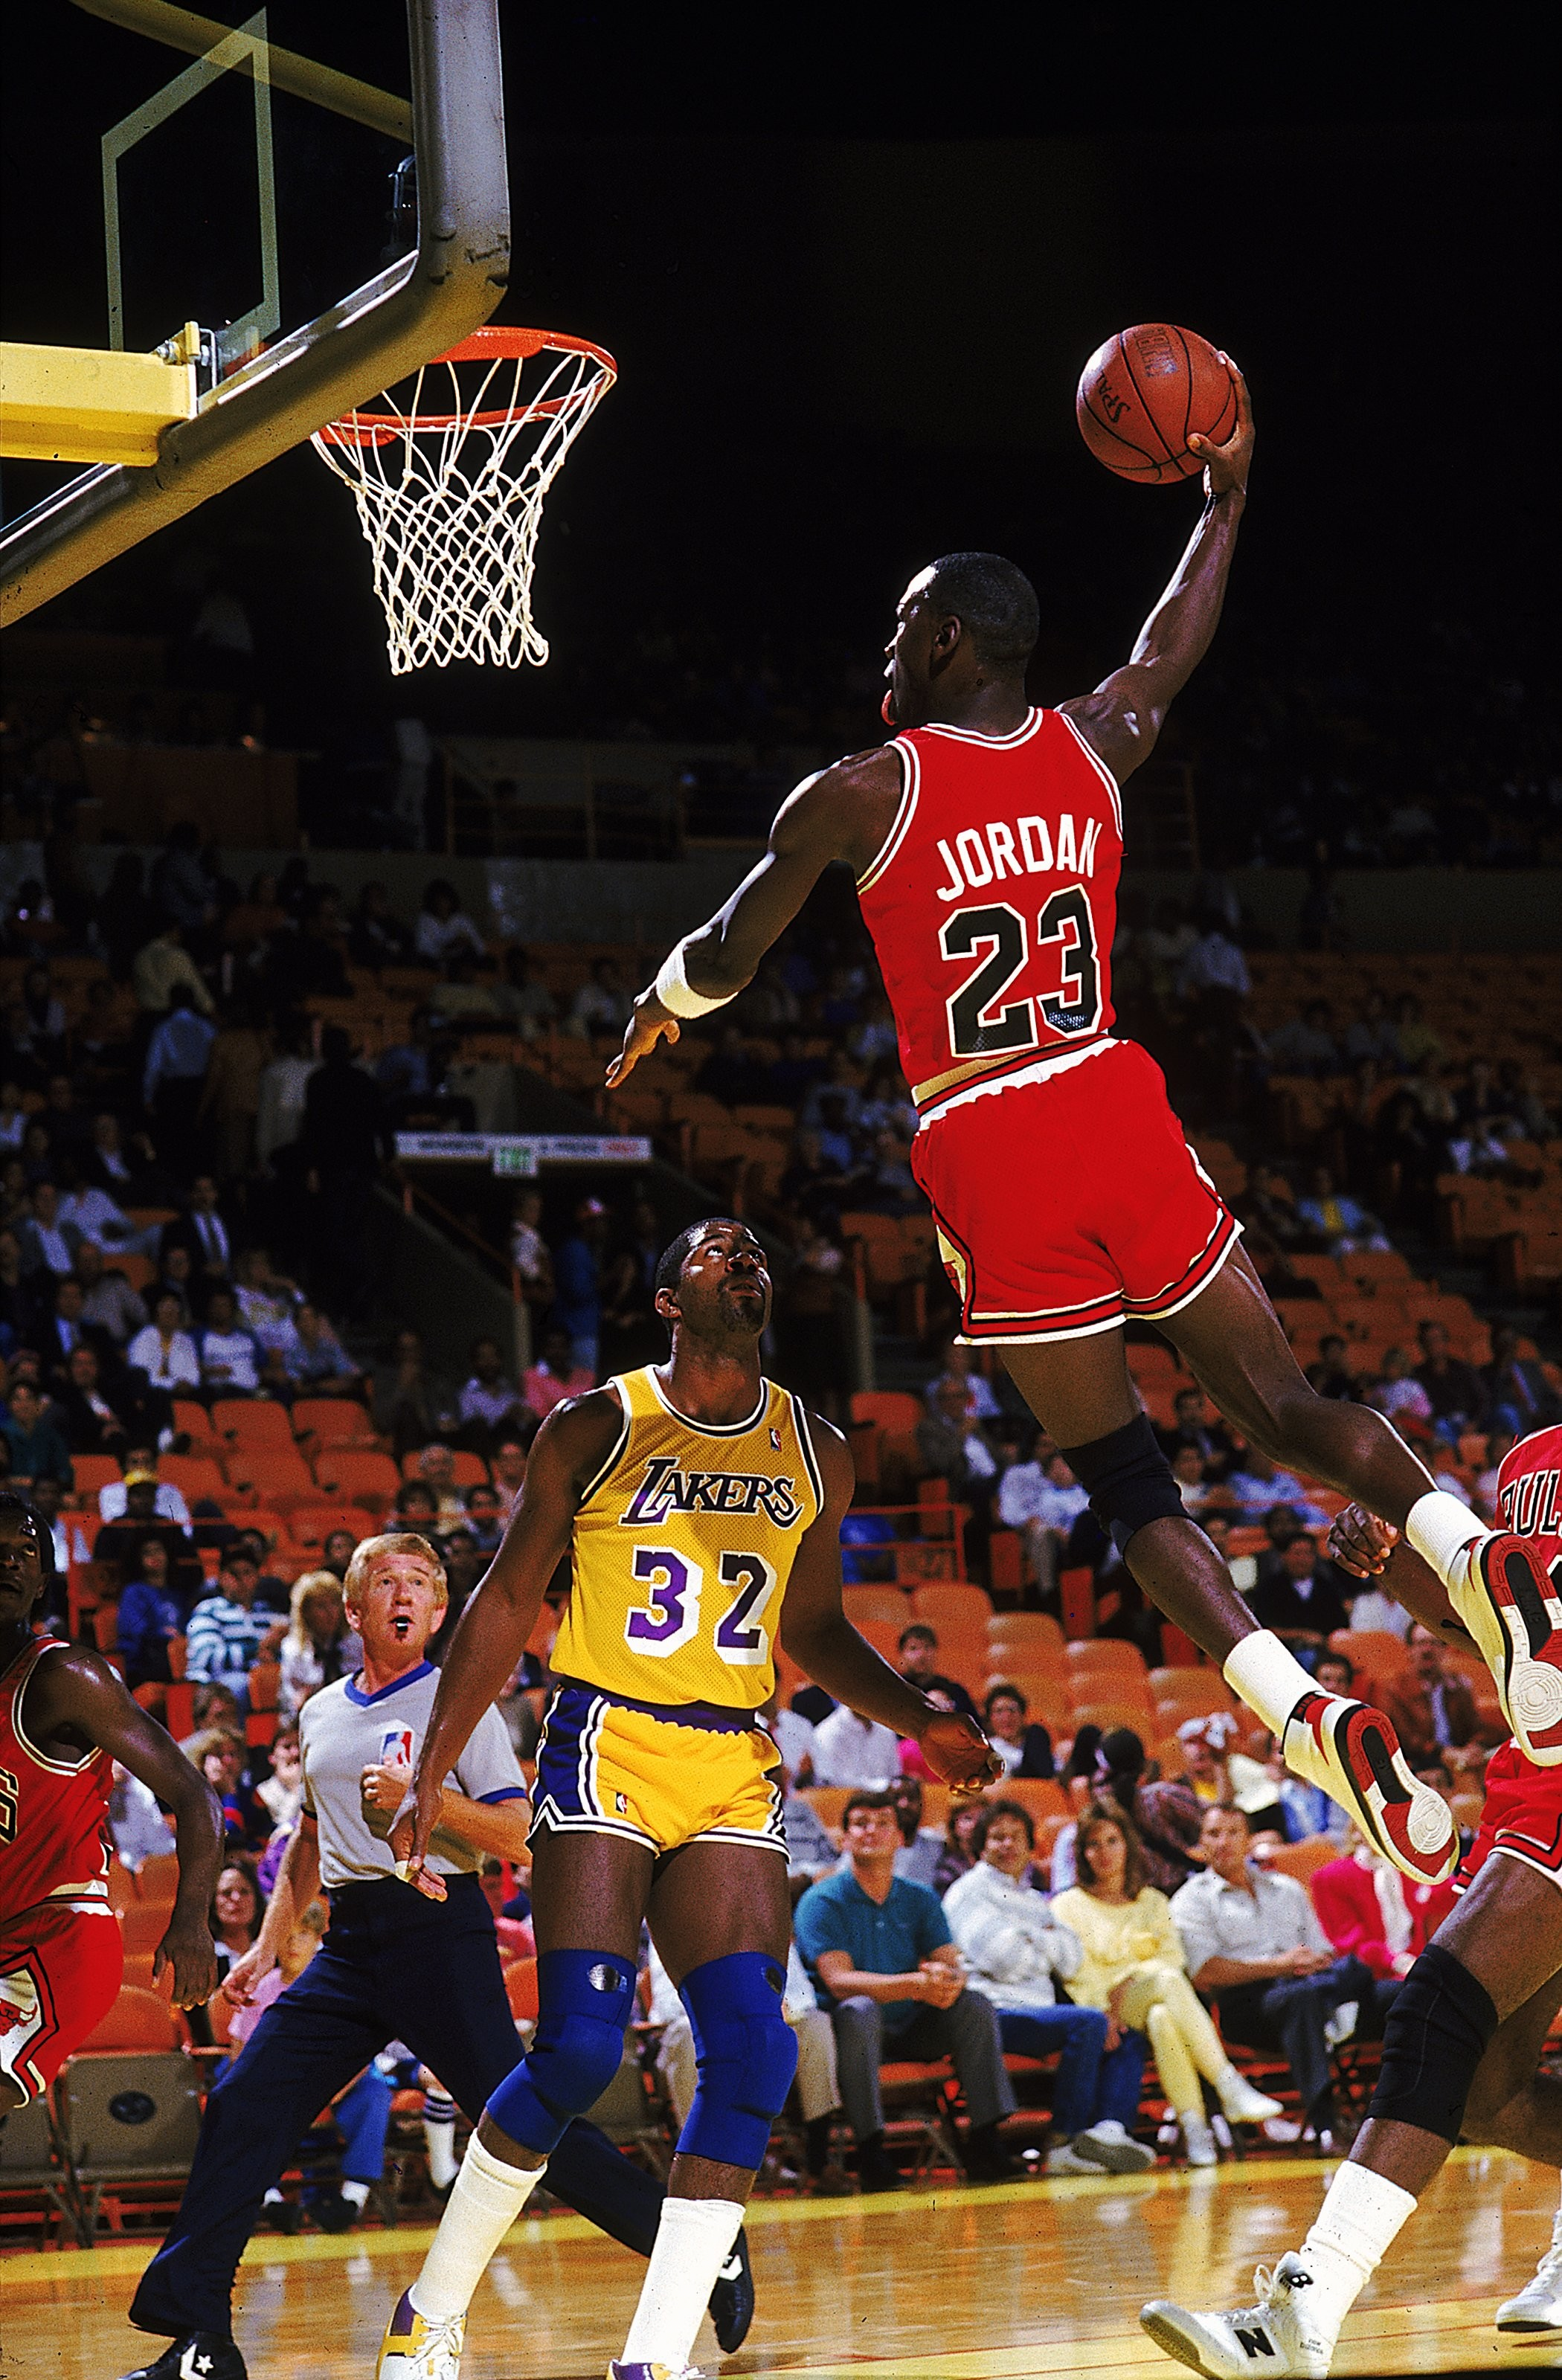 Jordan Dunk Wallpaper ...